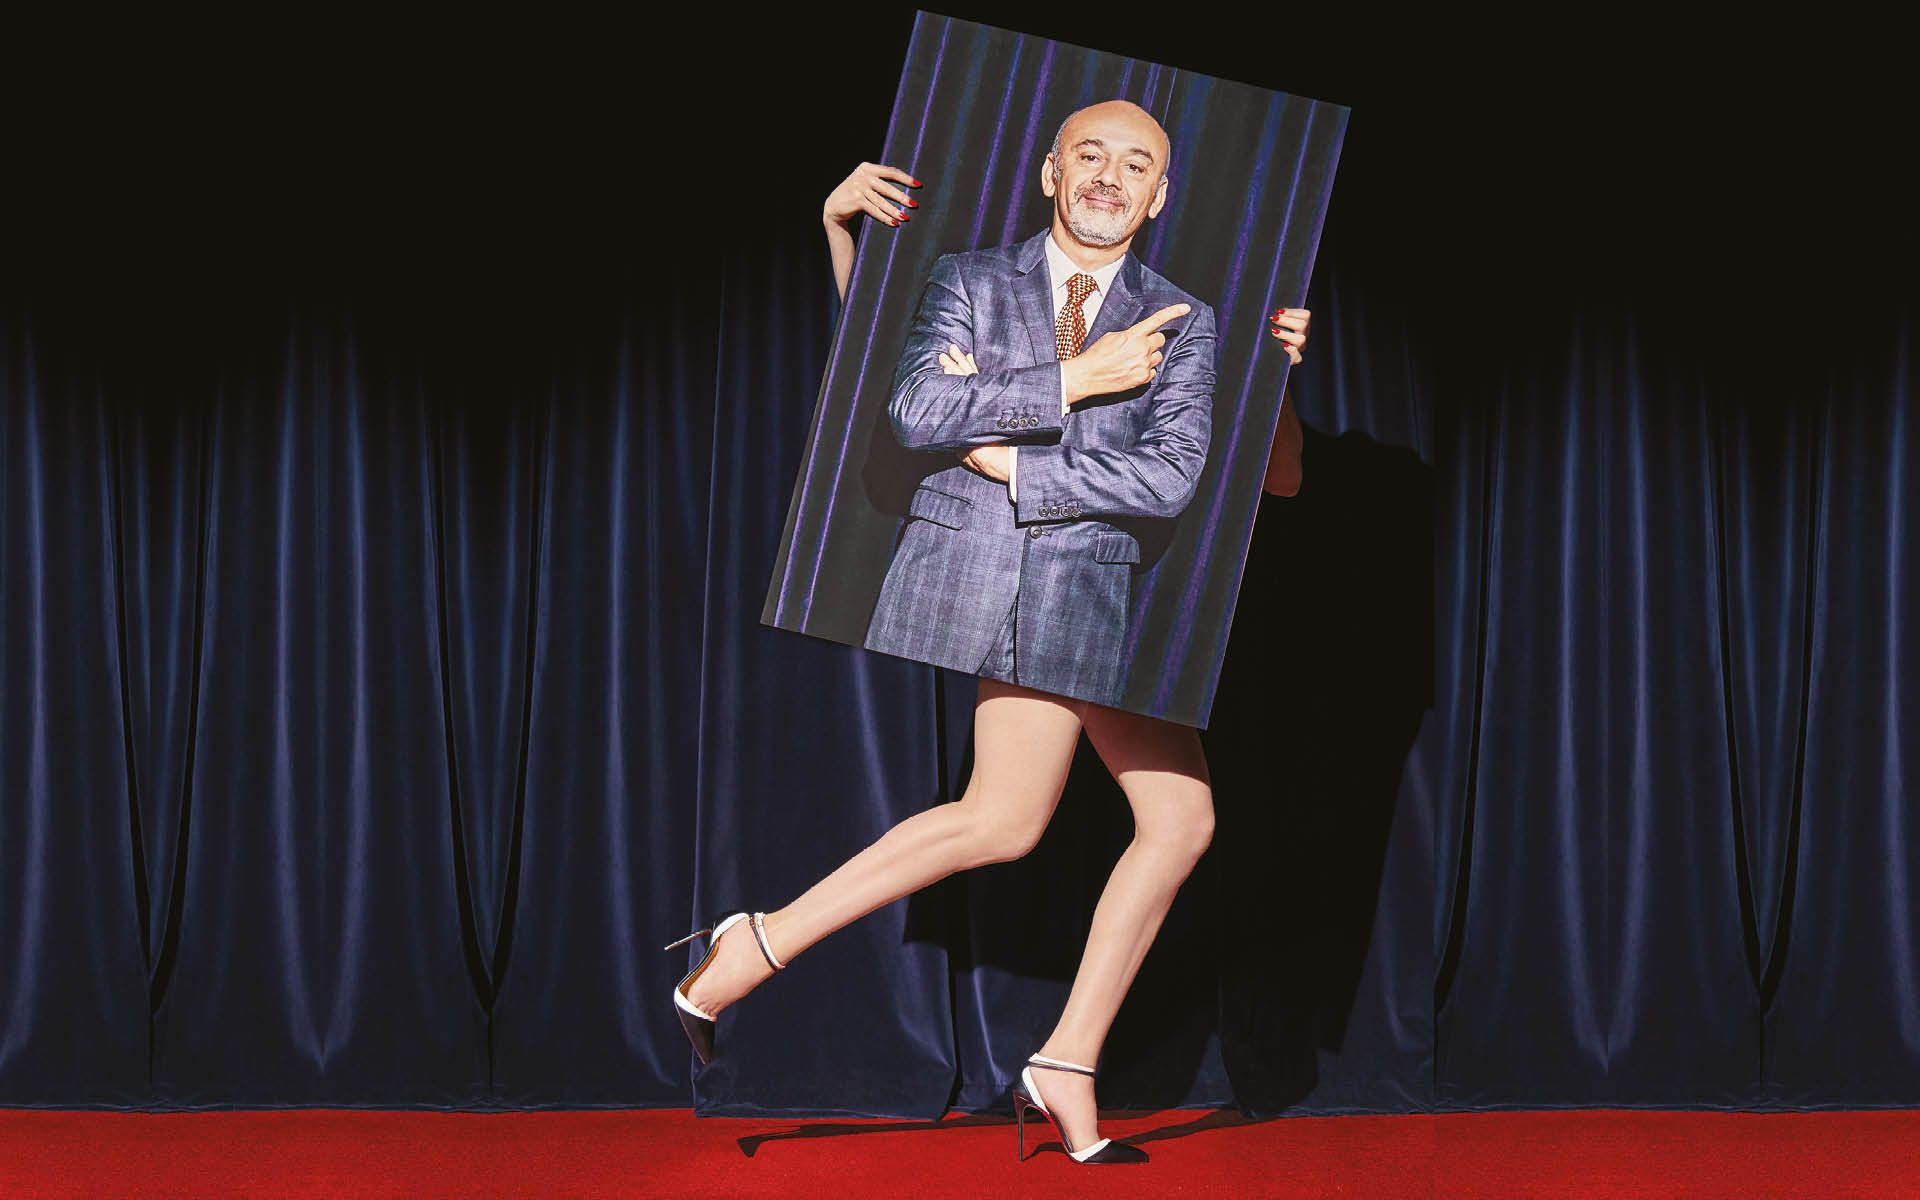 Hot On His Heels: Christian Louboutin On Shopping, Social Media And Spoiled Women